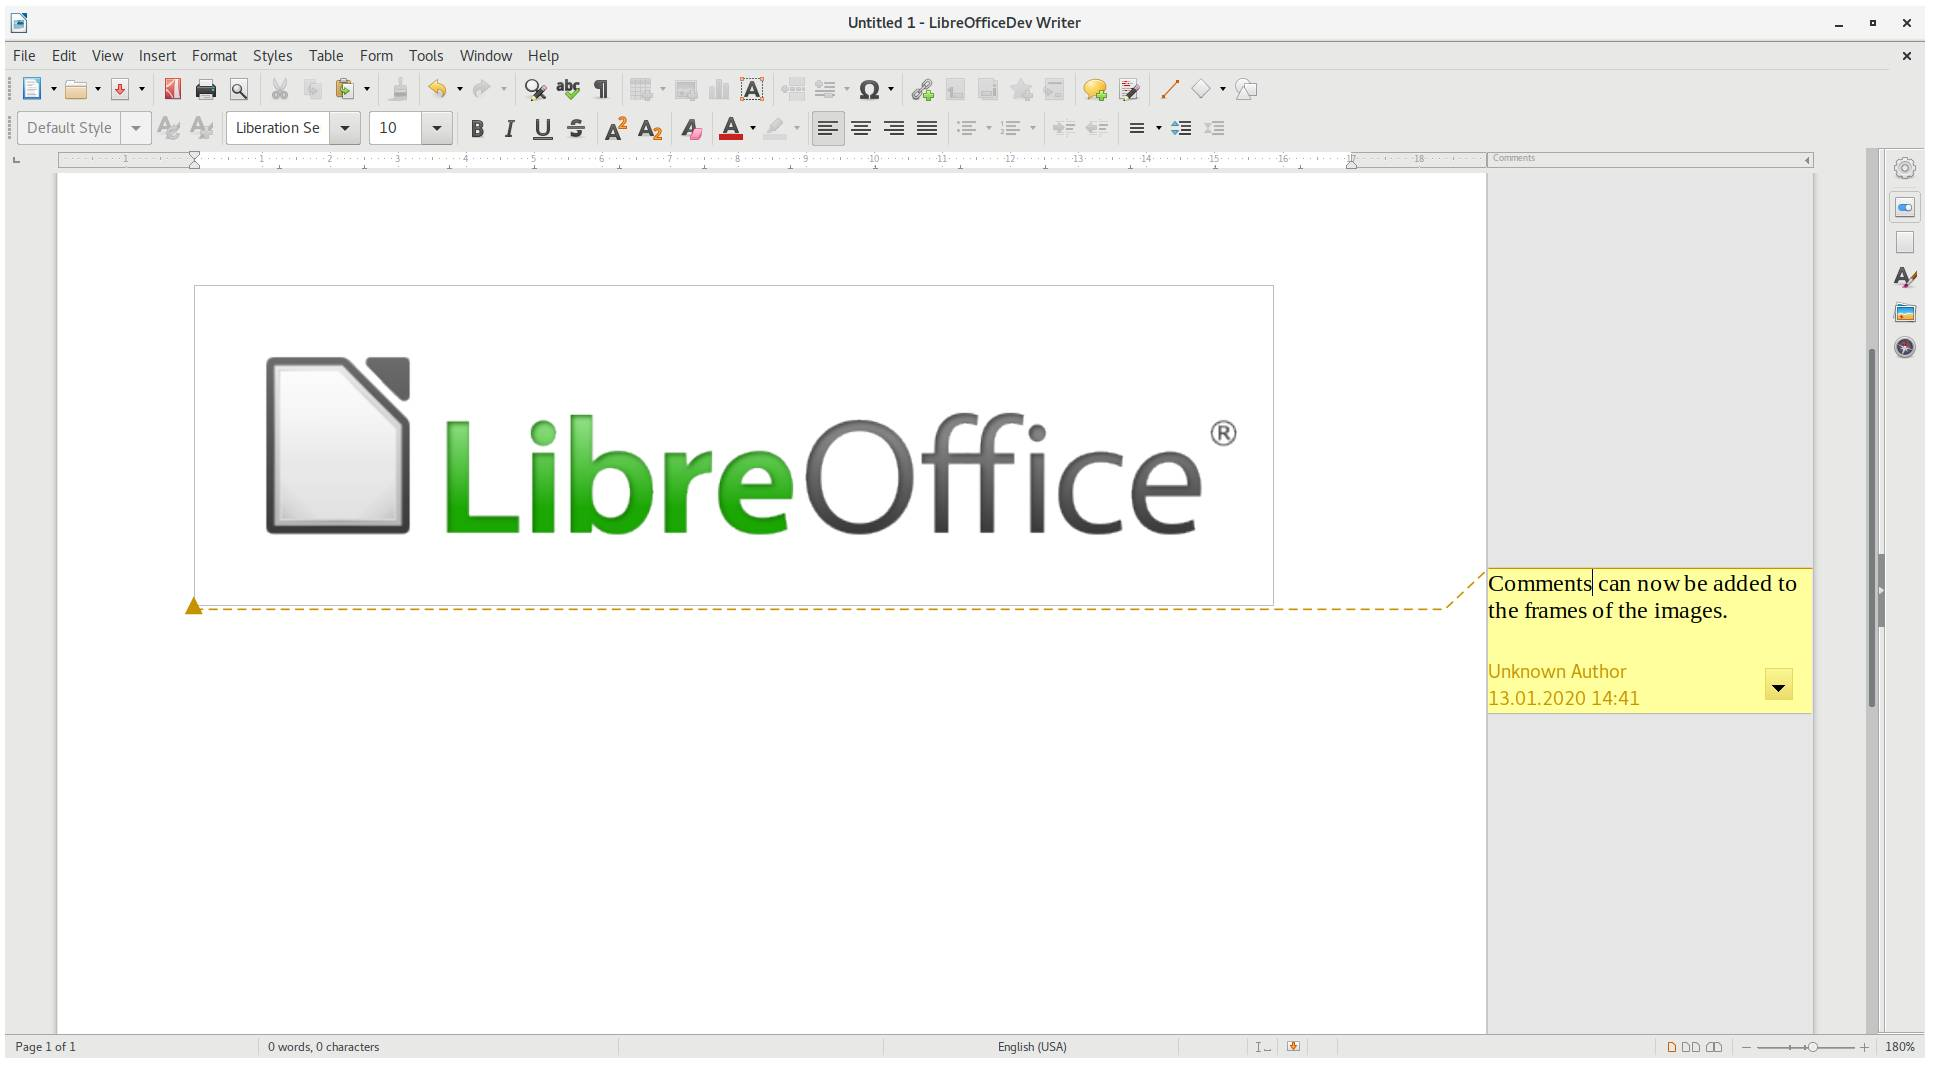 LibreOffice 6.4